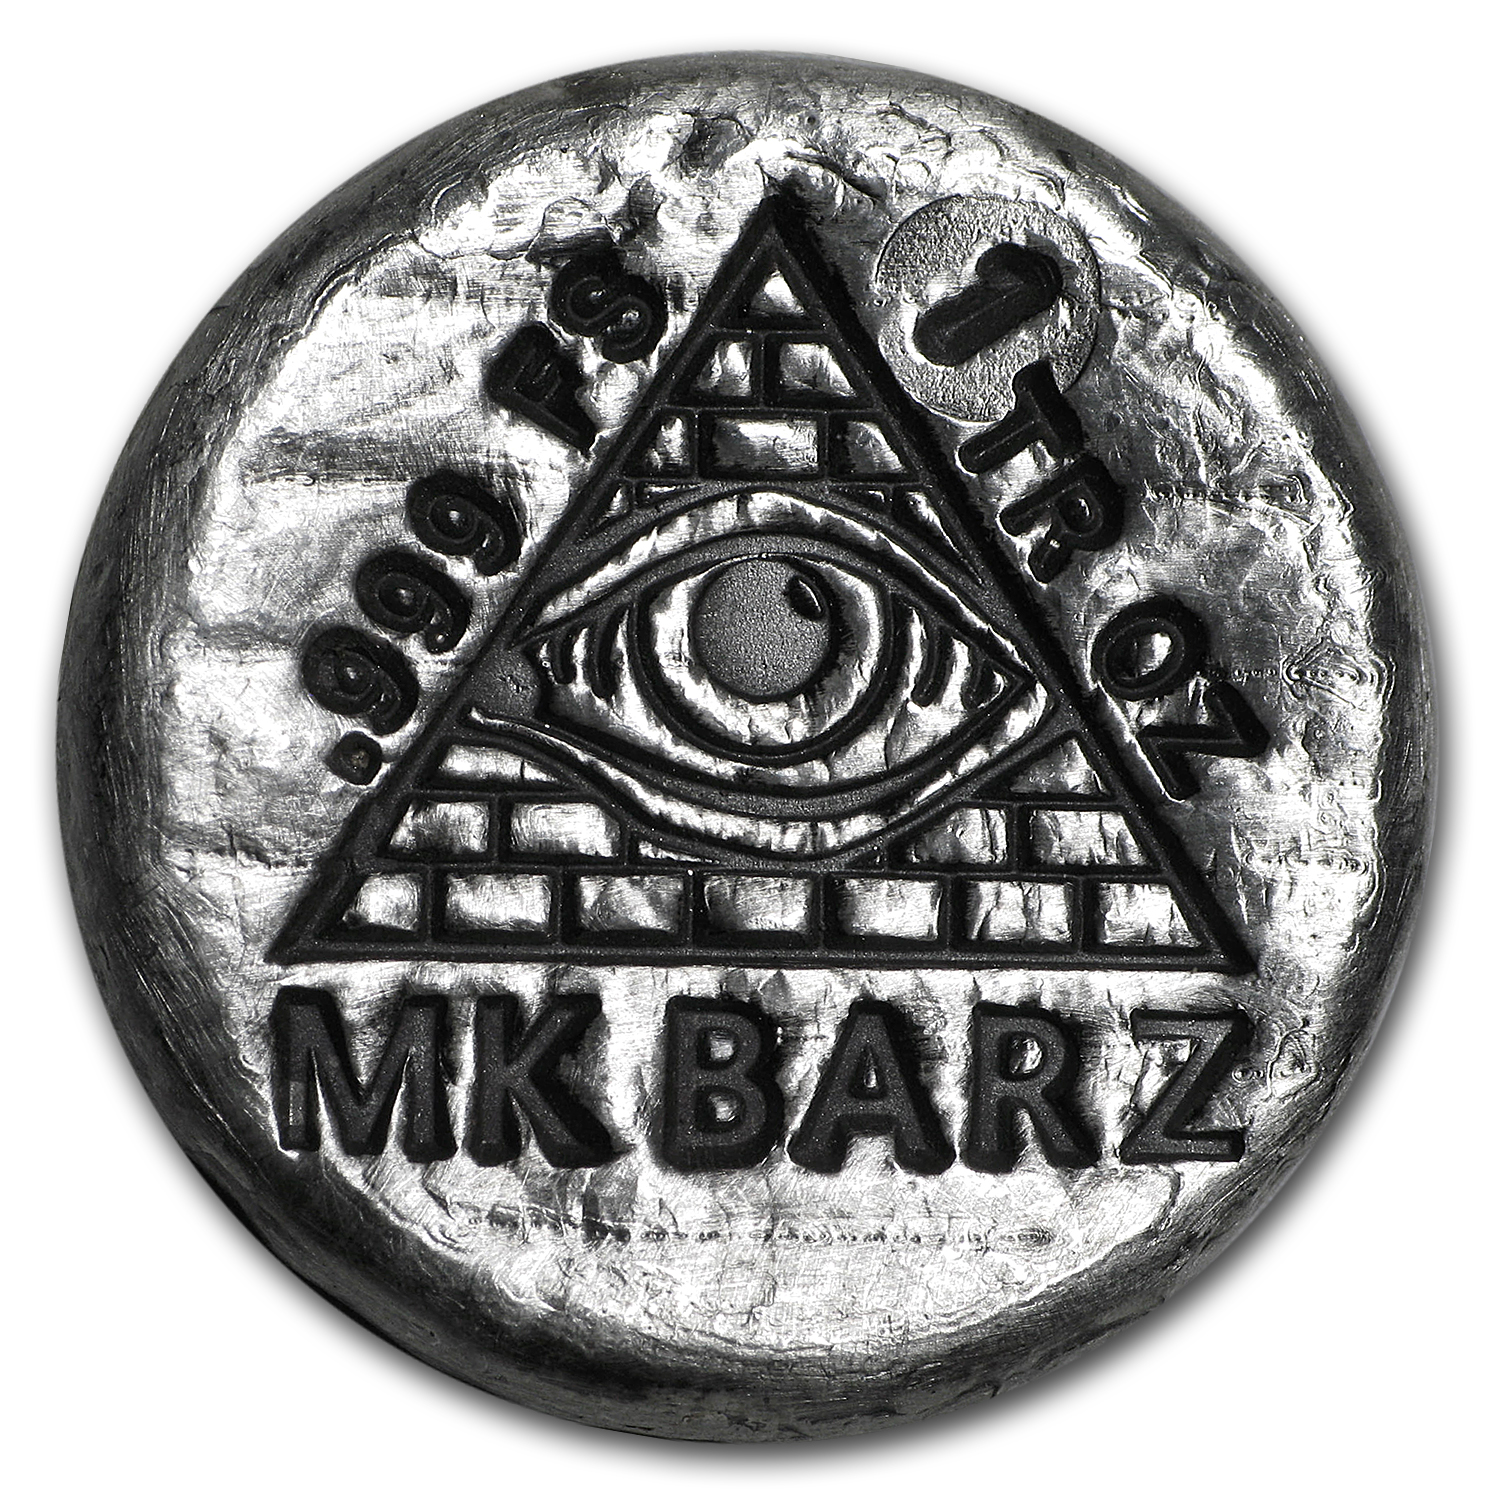 1 oz Silver Round - Mk Barz & Bullion (All-Seeing Eye)